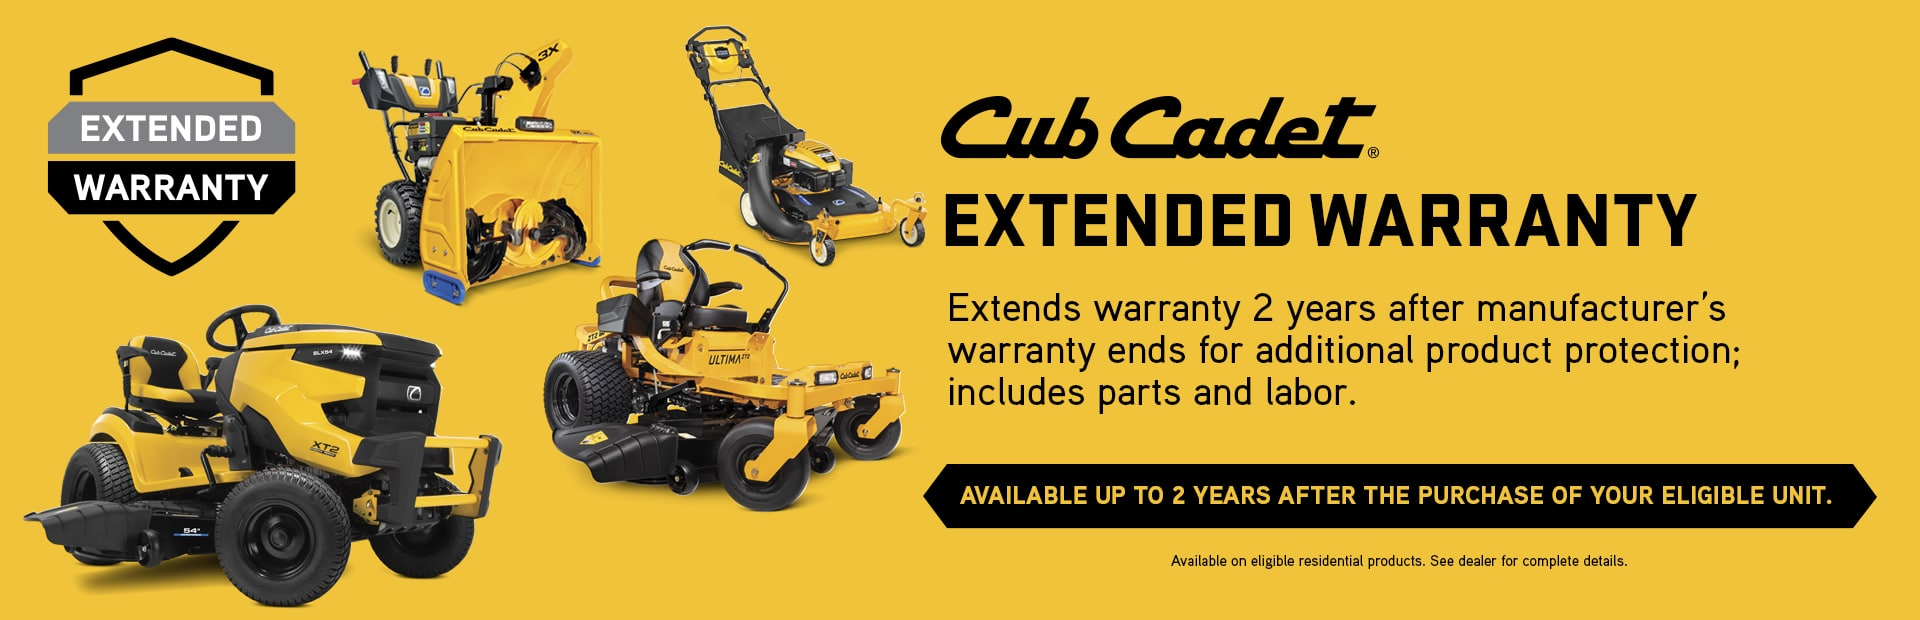 banner-cub-cadet-extended-warranty-w-snow-thrower